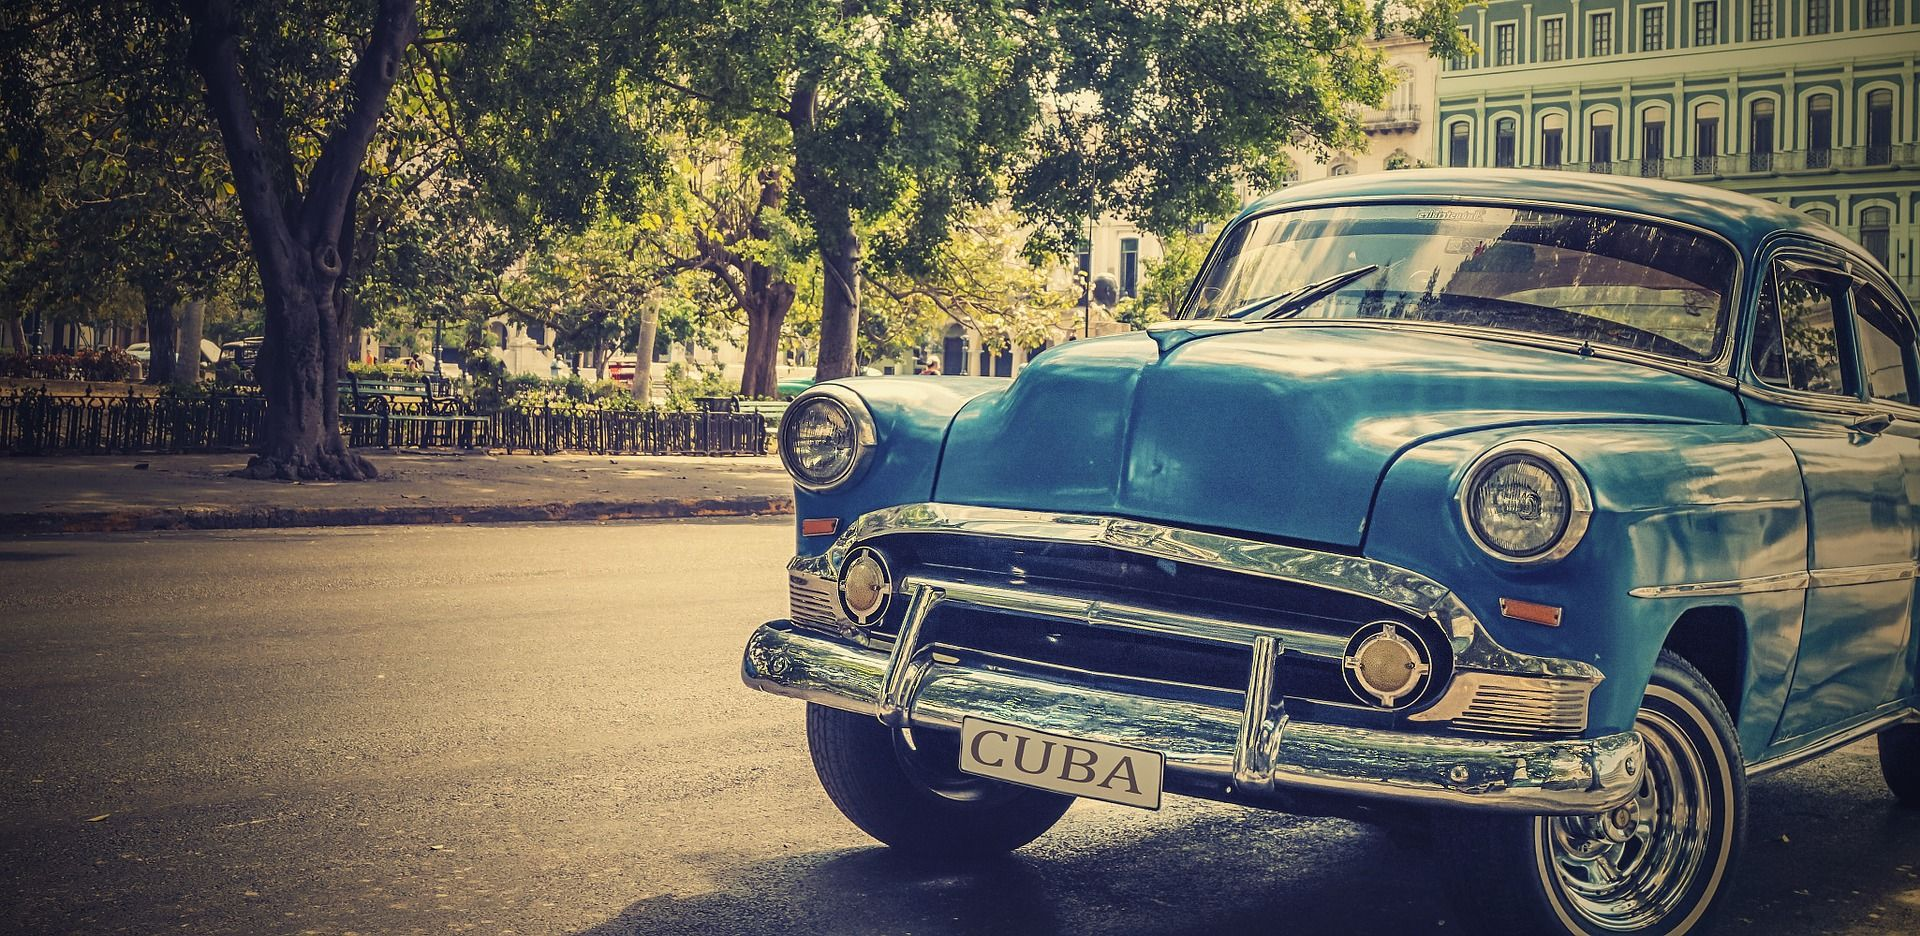 If you love classic cars, Cuba just may be the PERFECT vacation